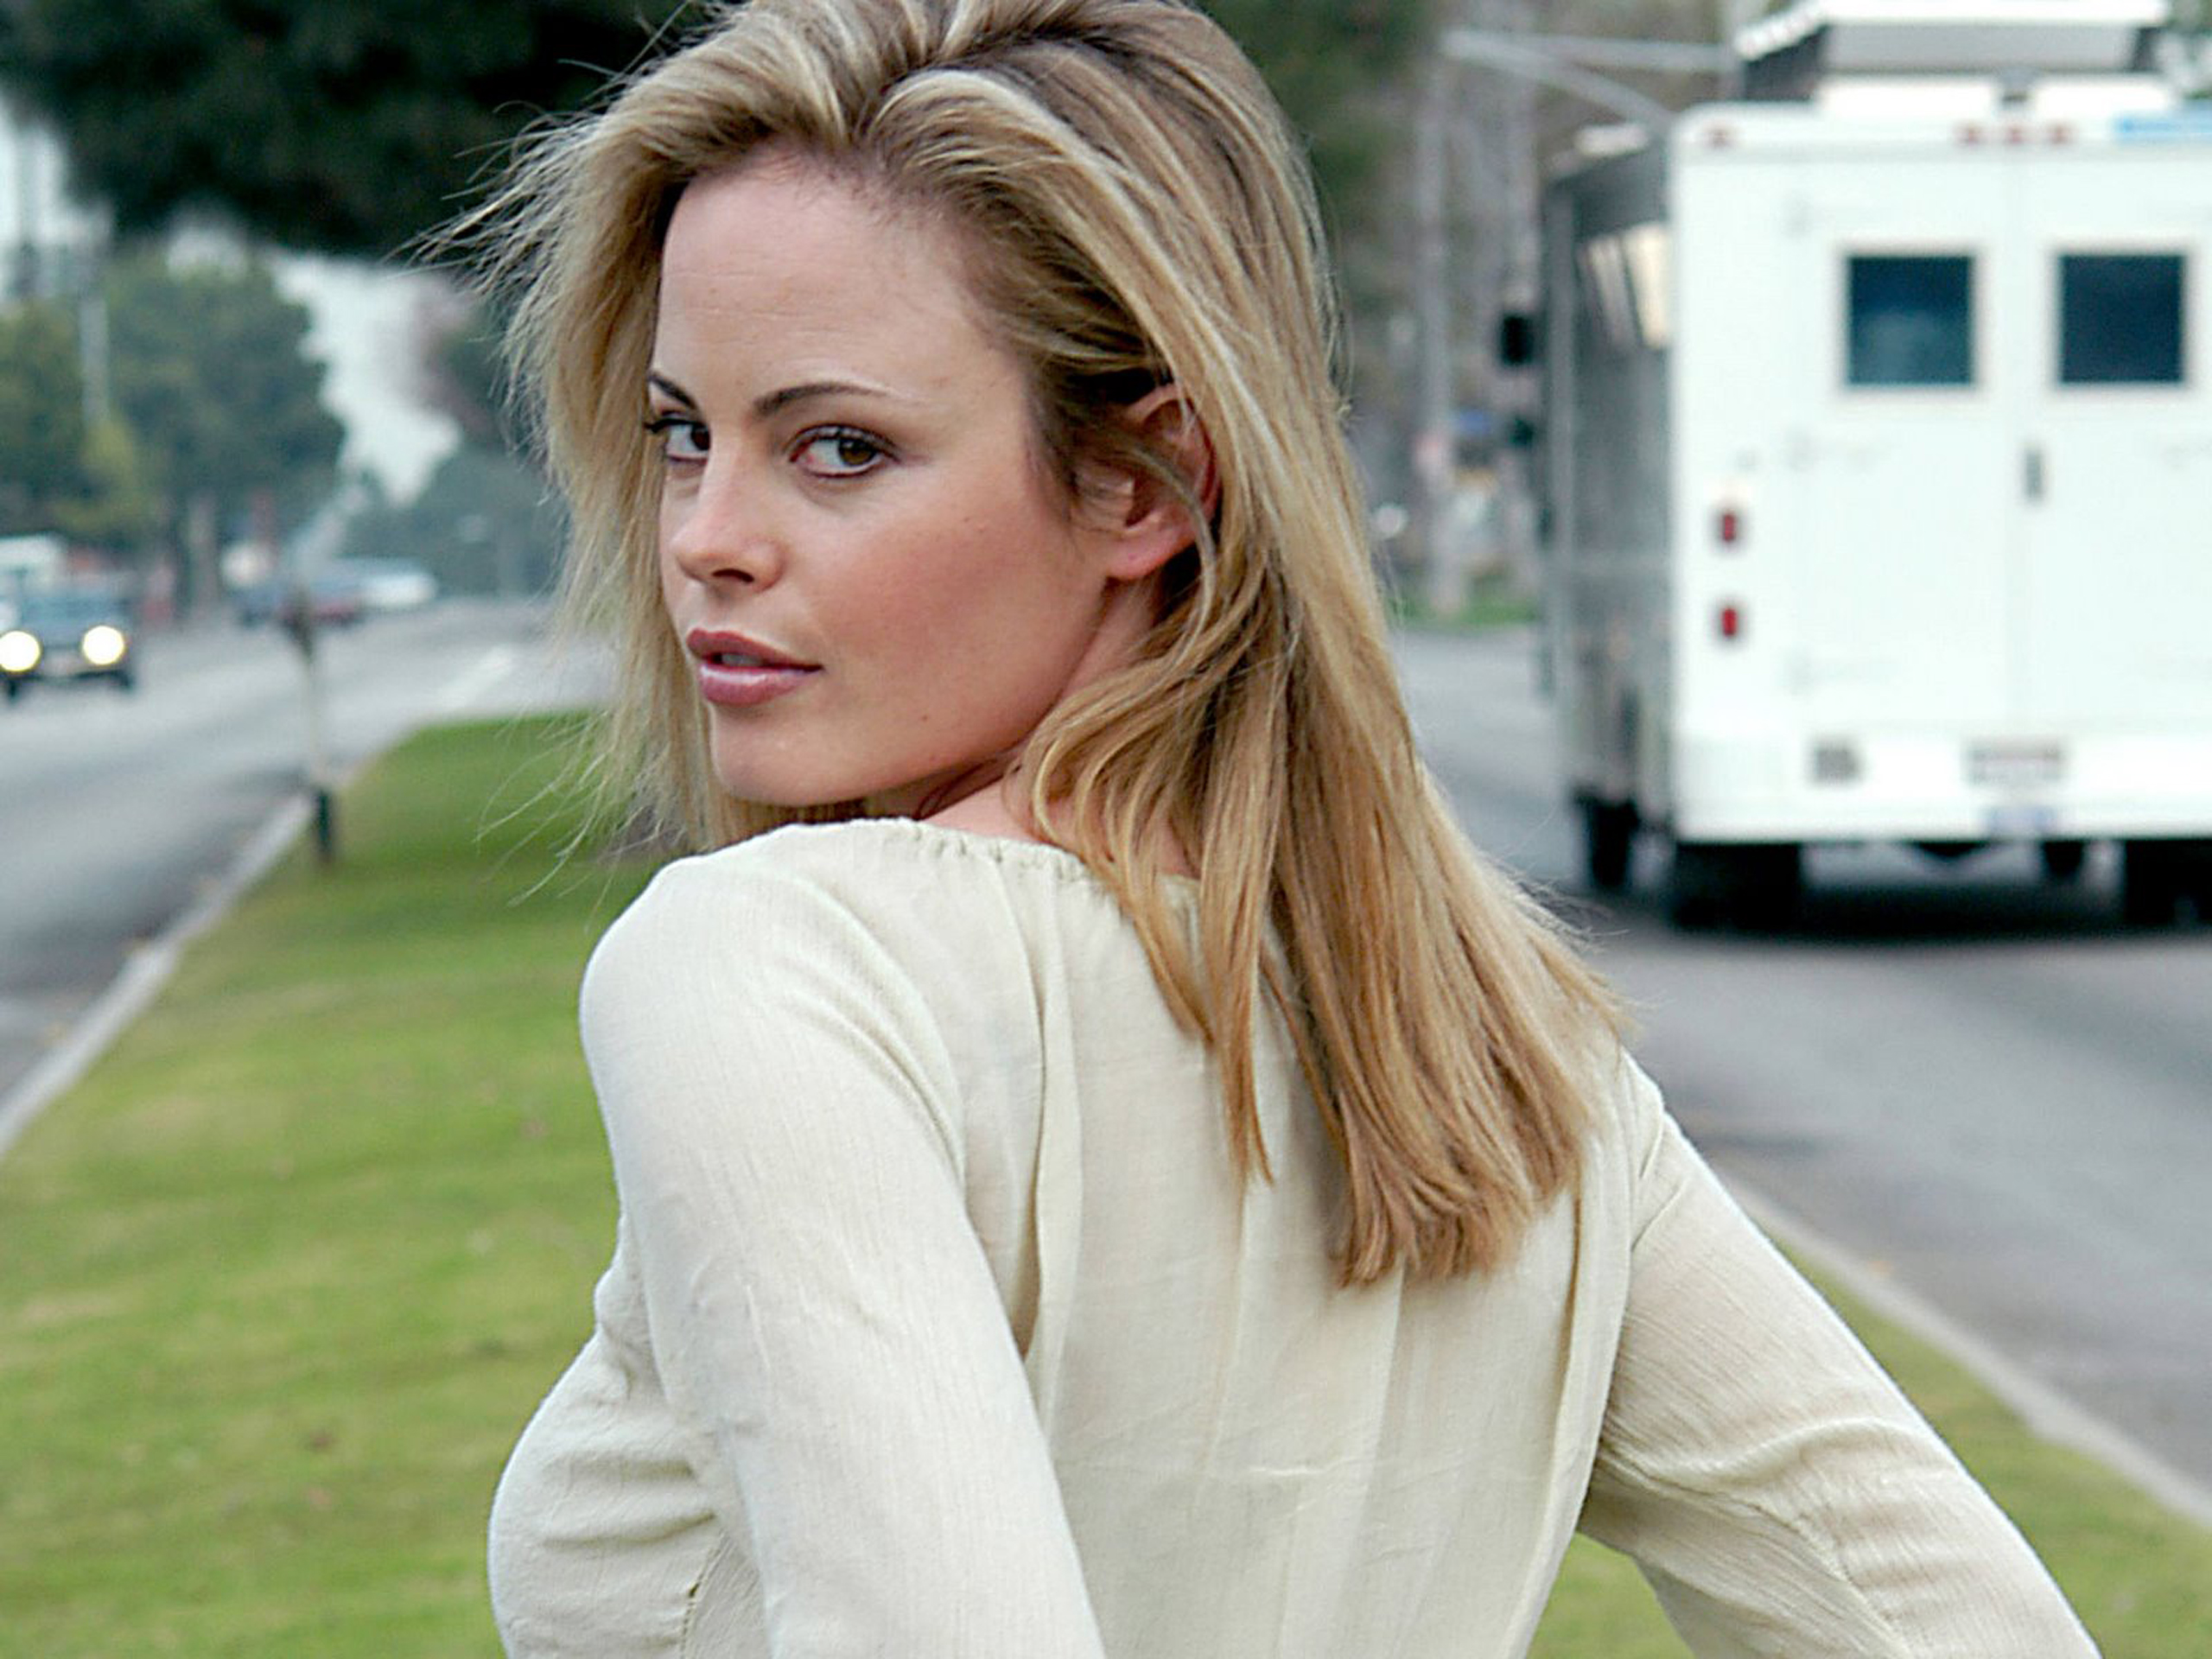 Tips: Chandra West, 2018s alternative hair style of the confident charming  actress